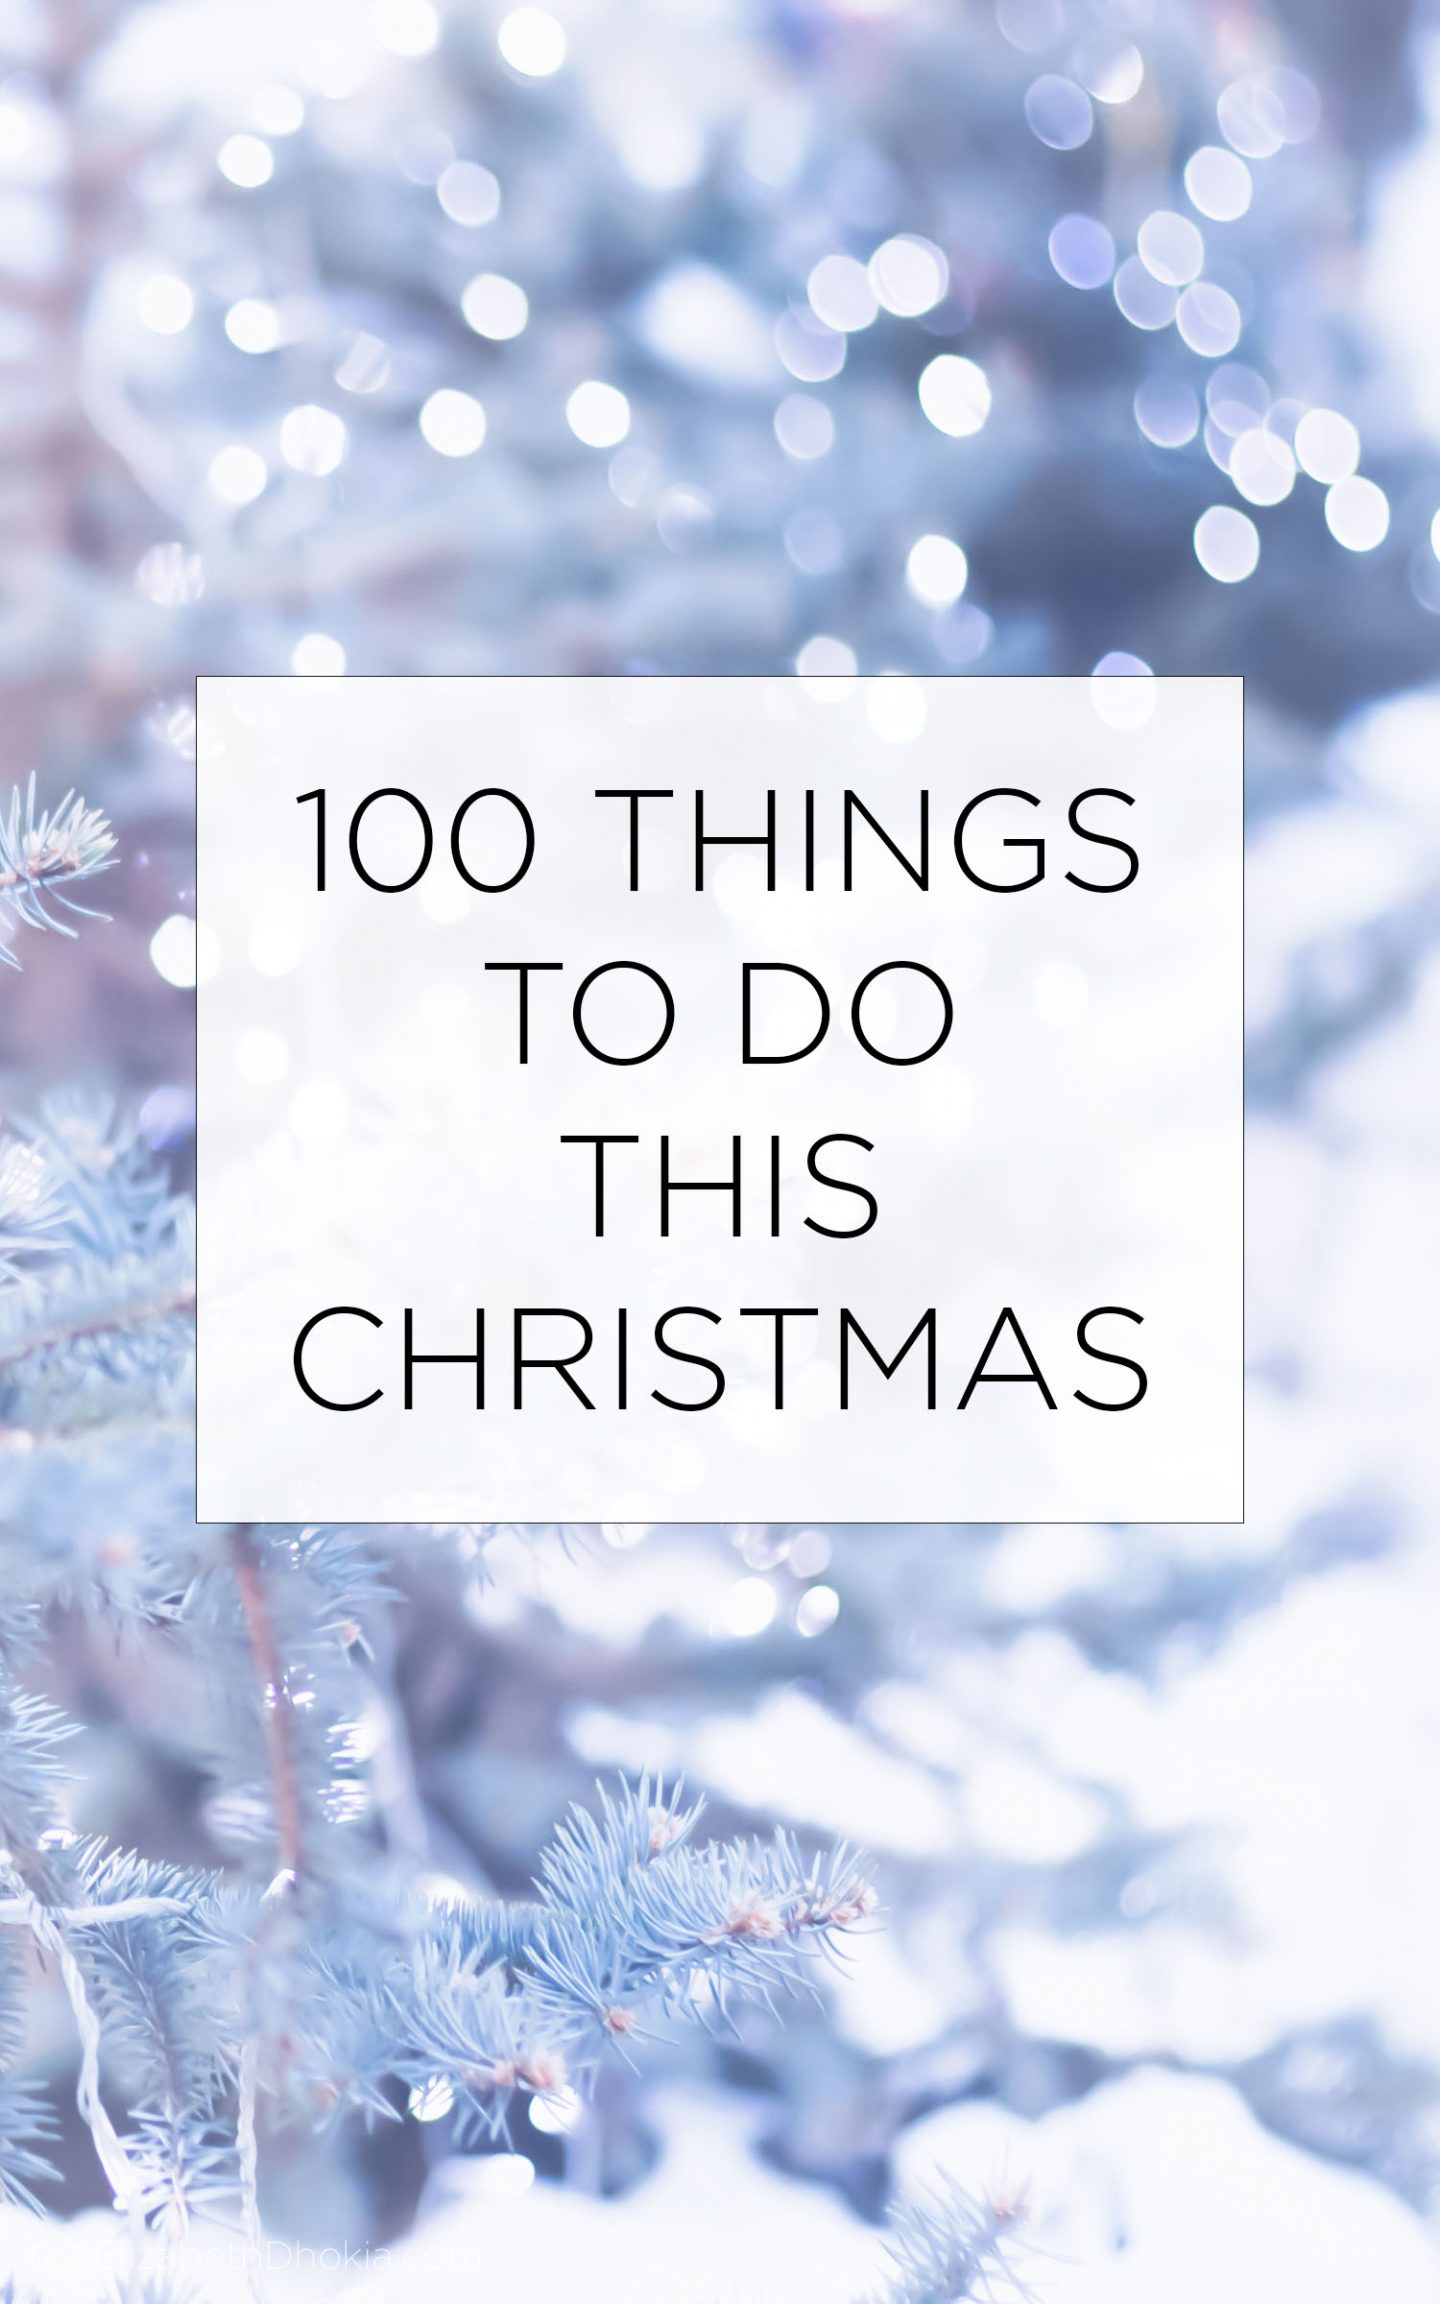 100 Things To Do This Christmas